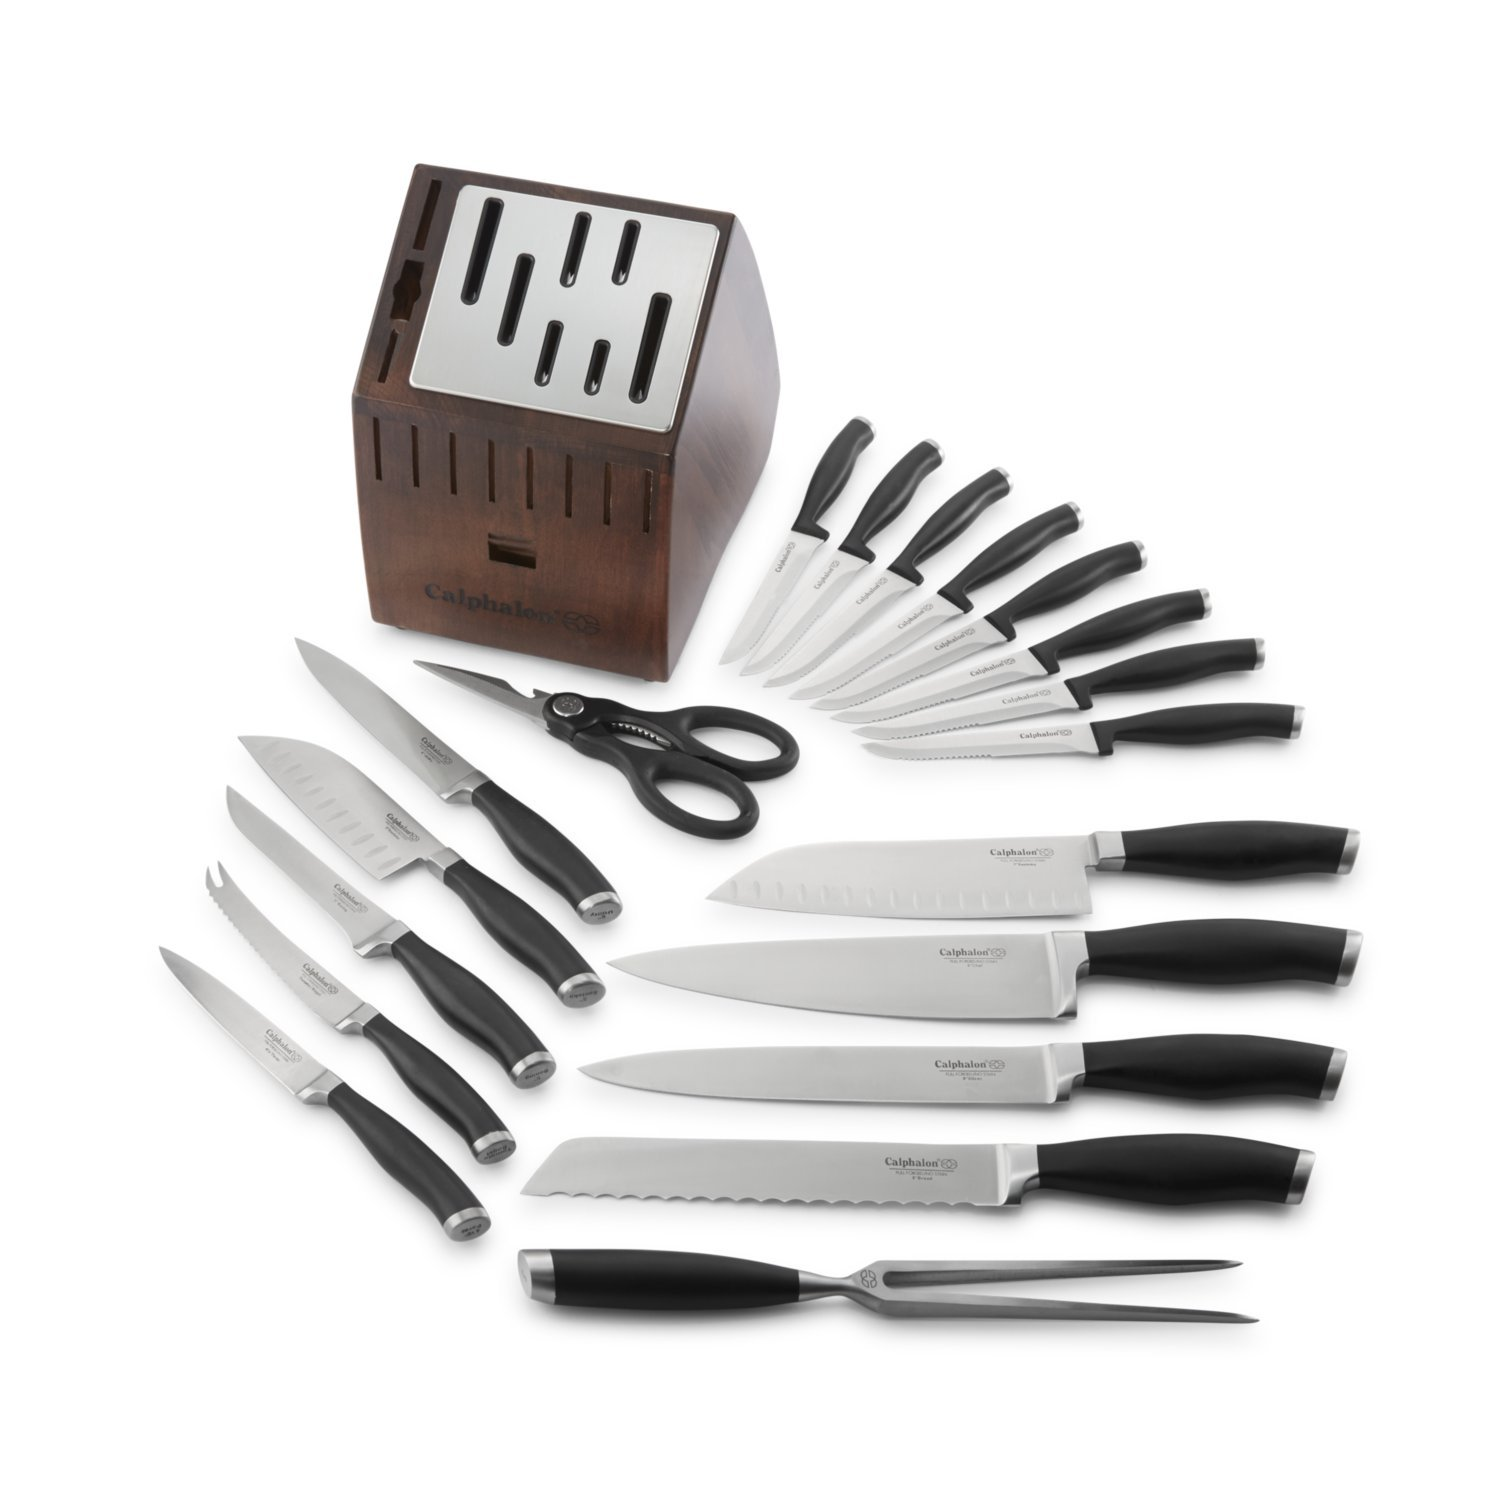 Calphalon Contemporary Self-sharpening 20-piece Knife Block Set, with SharpIn Technology